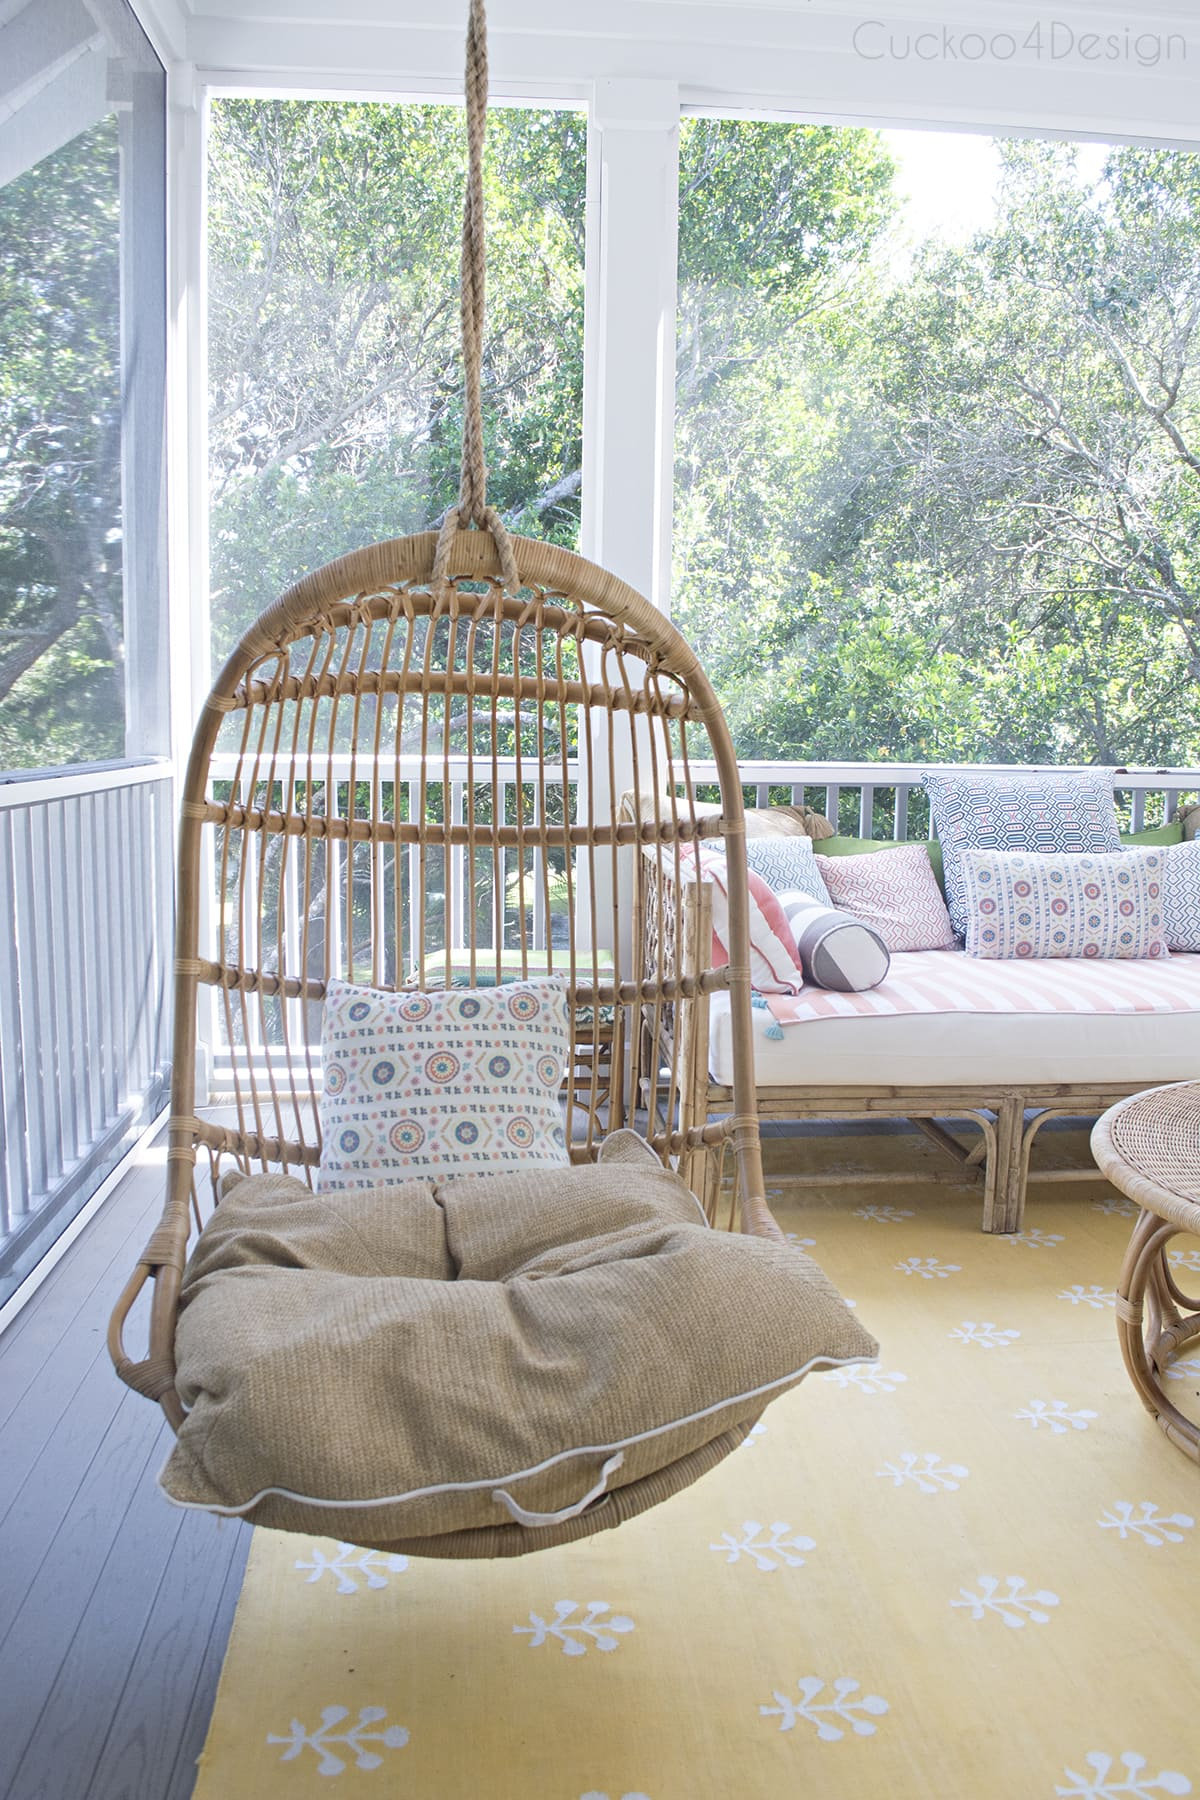 eclectic colorful outdoor deck with rattan wicker and hanging chairs hanging chairs